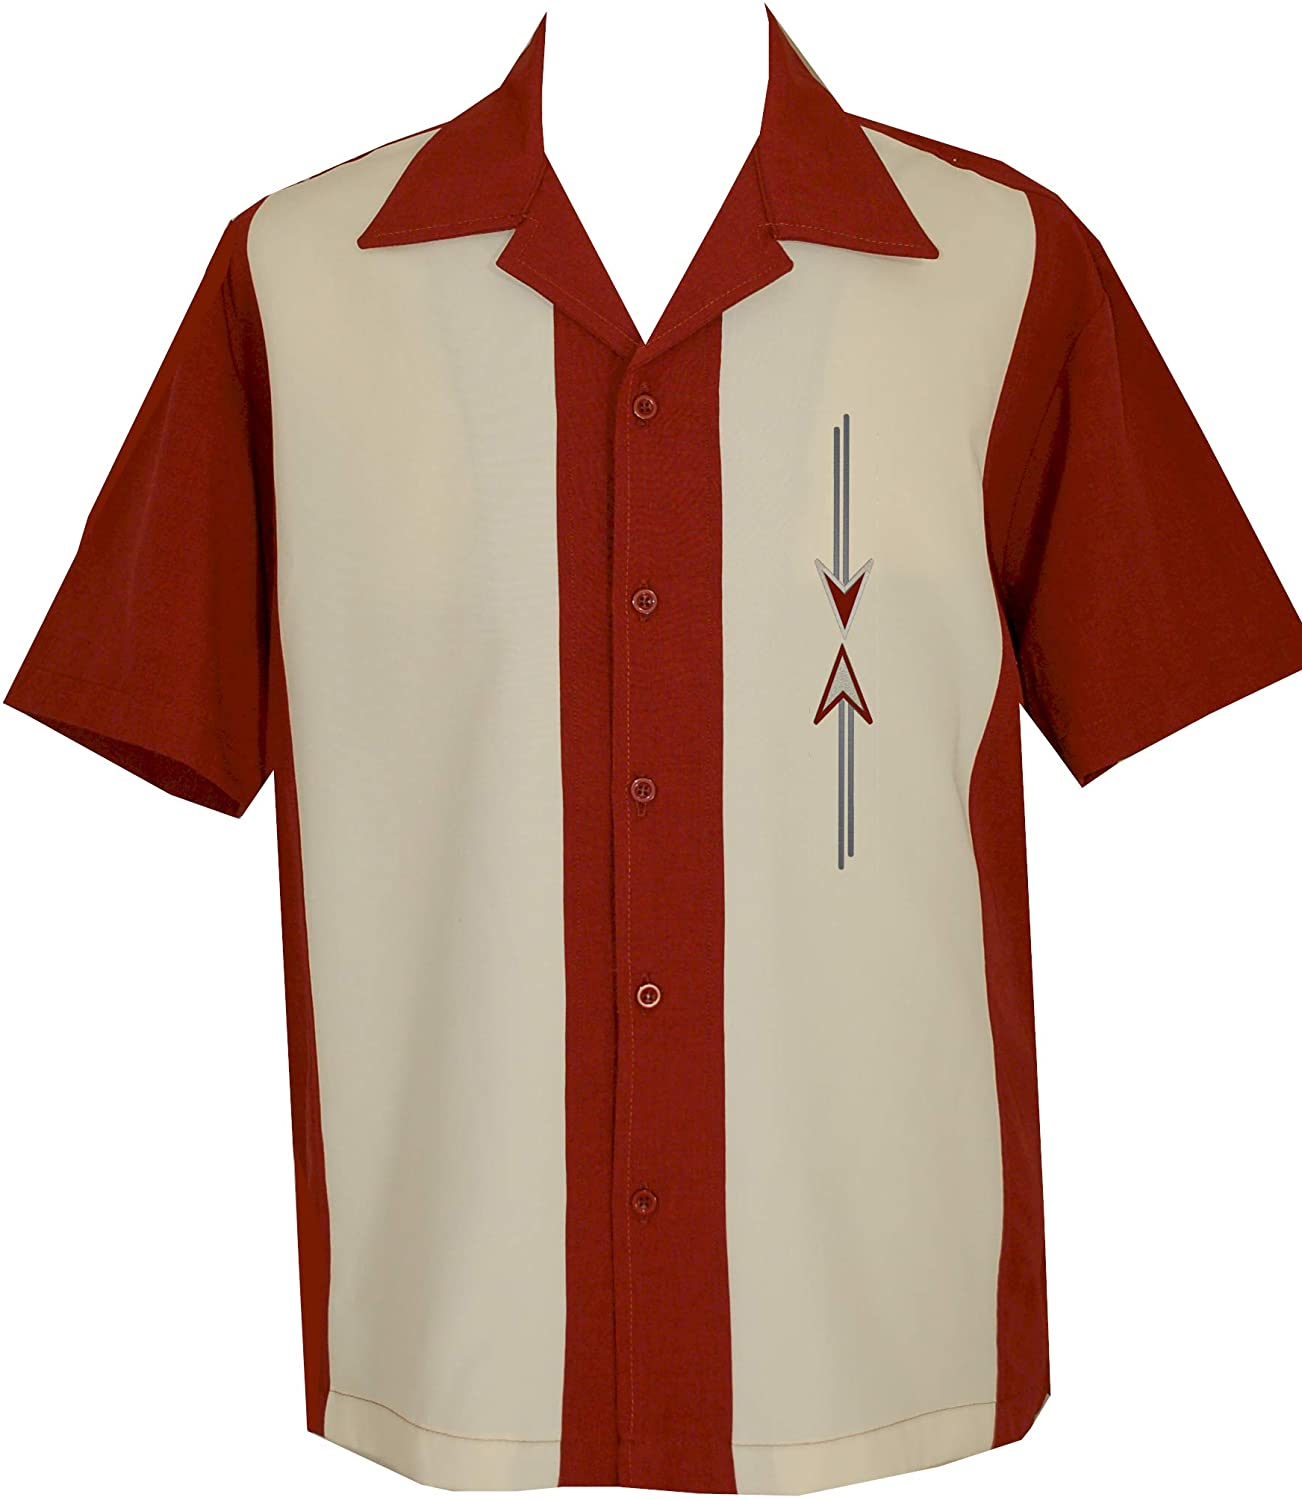 Mens Vintage Shirts – Casual, Dress, T-shirts, Polos Lucky Paradise Mens Camp Shirt Vintage Cuban Style Bowling Shirt ~ Schrader $64.95 AT vintagedancer.com